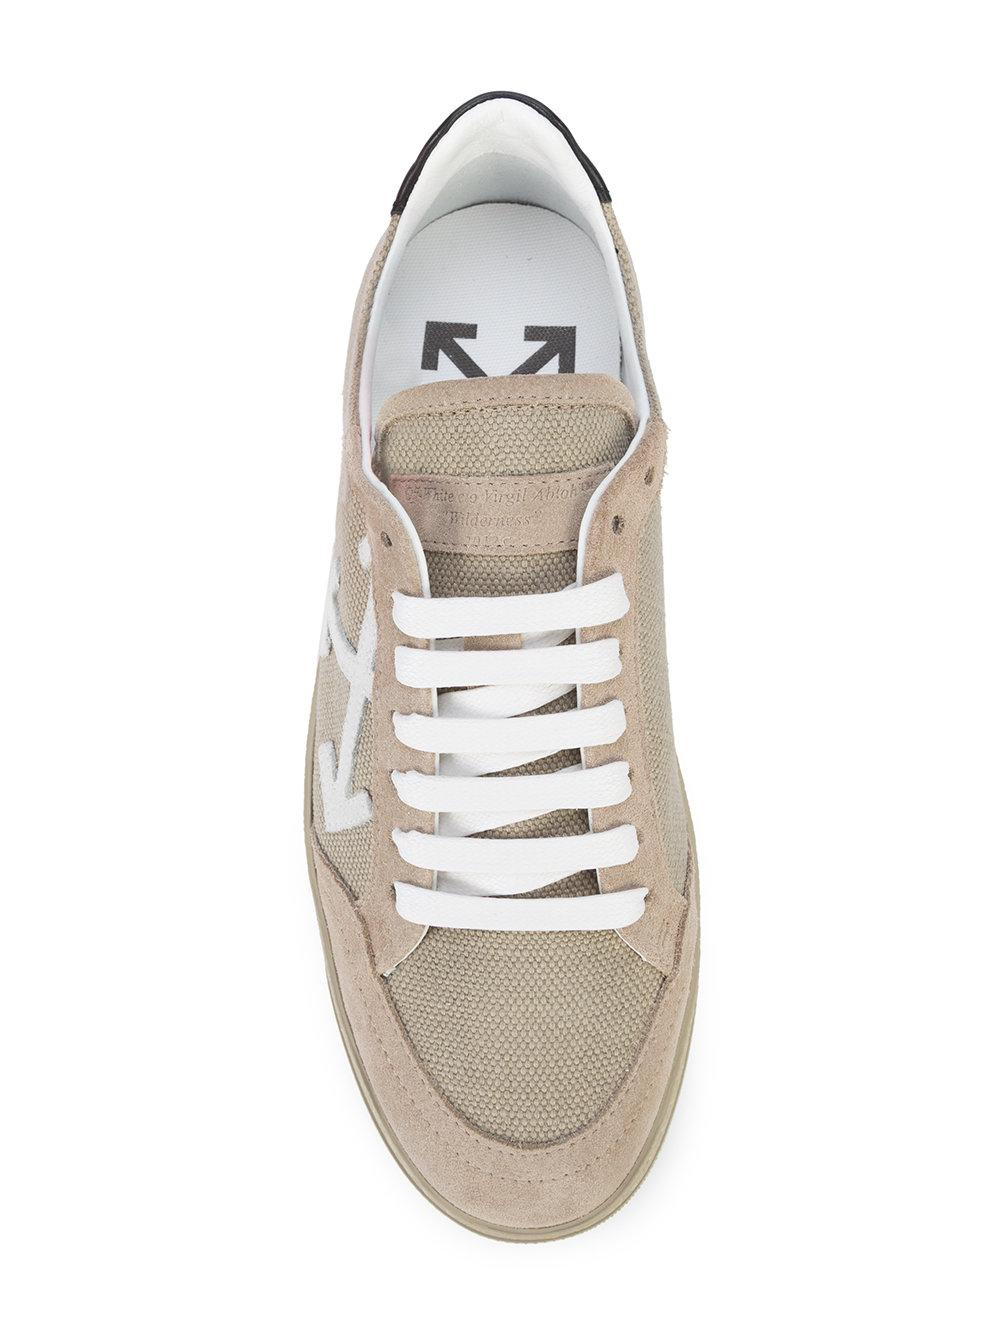 Off-White c/o Virgil Abloh Leather Carryover Sneakers in Brown